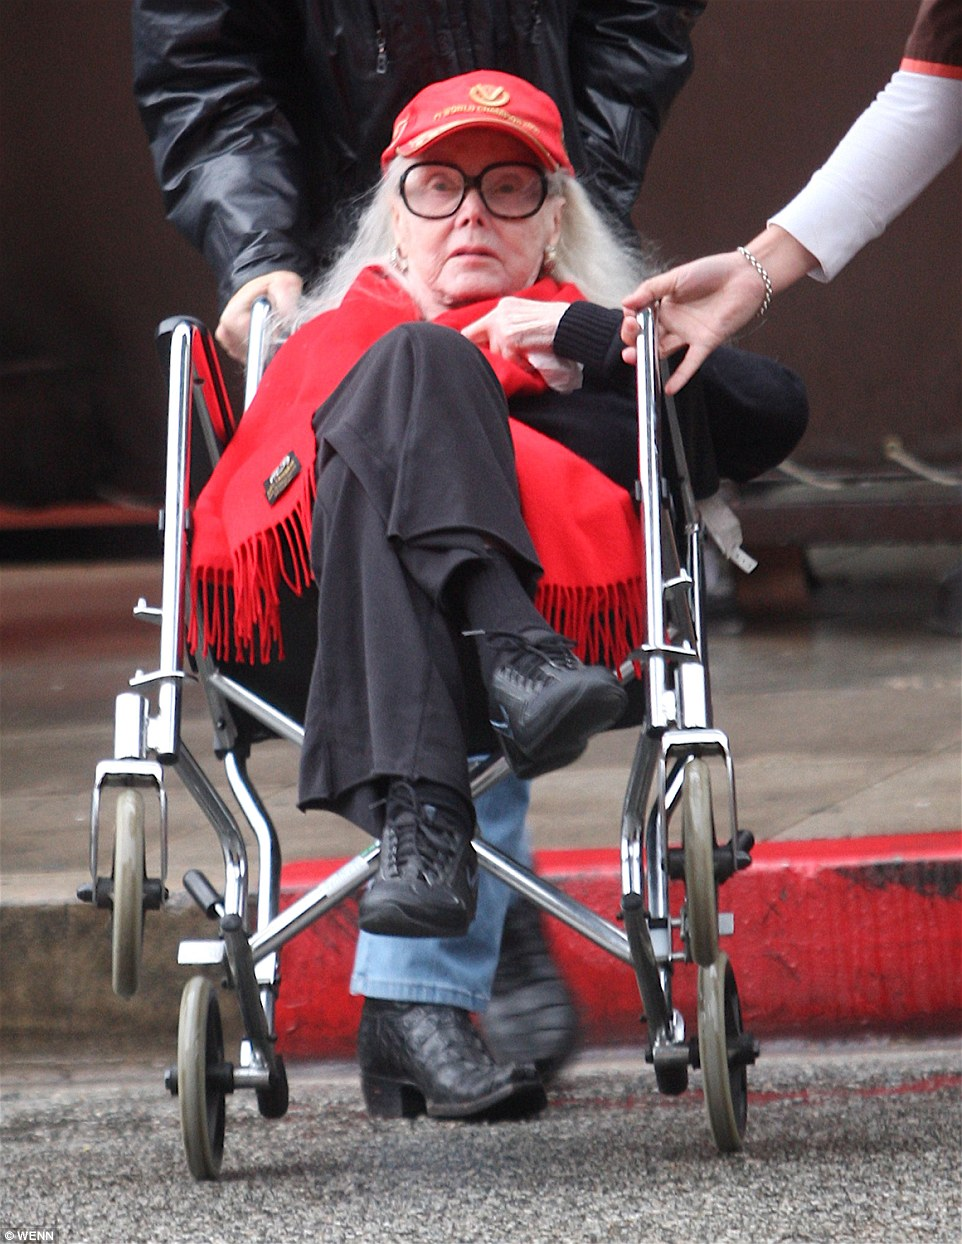 Hungarian actress and socialite Zsa Zsa Gabor has passed away at the age of 99. She is pictured above in 2010